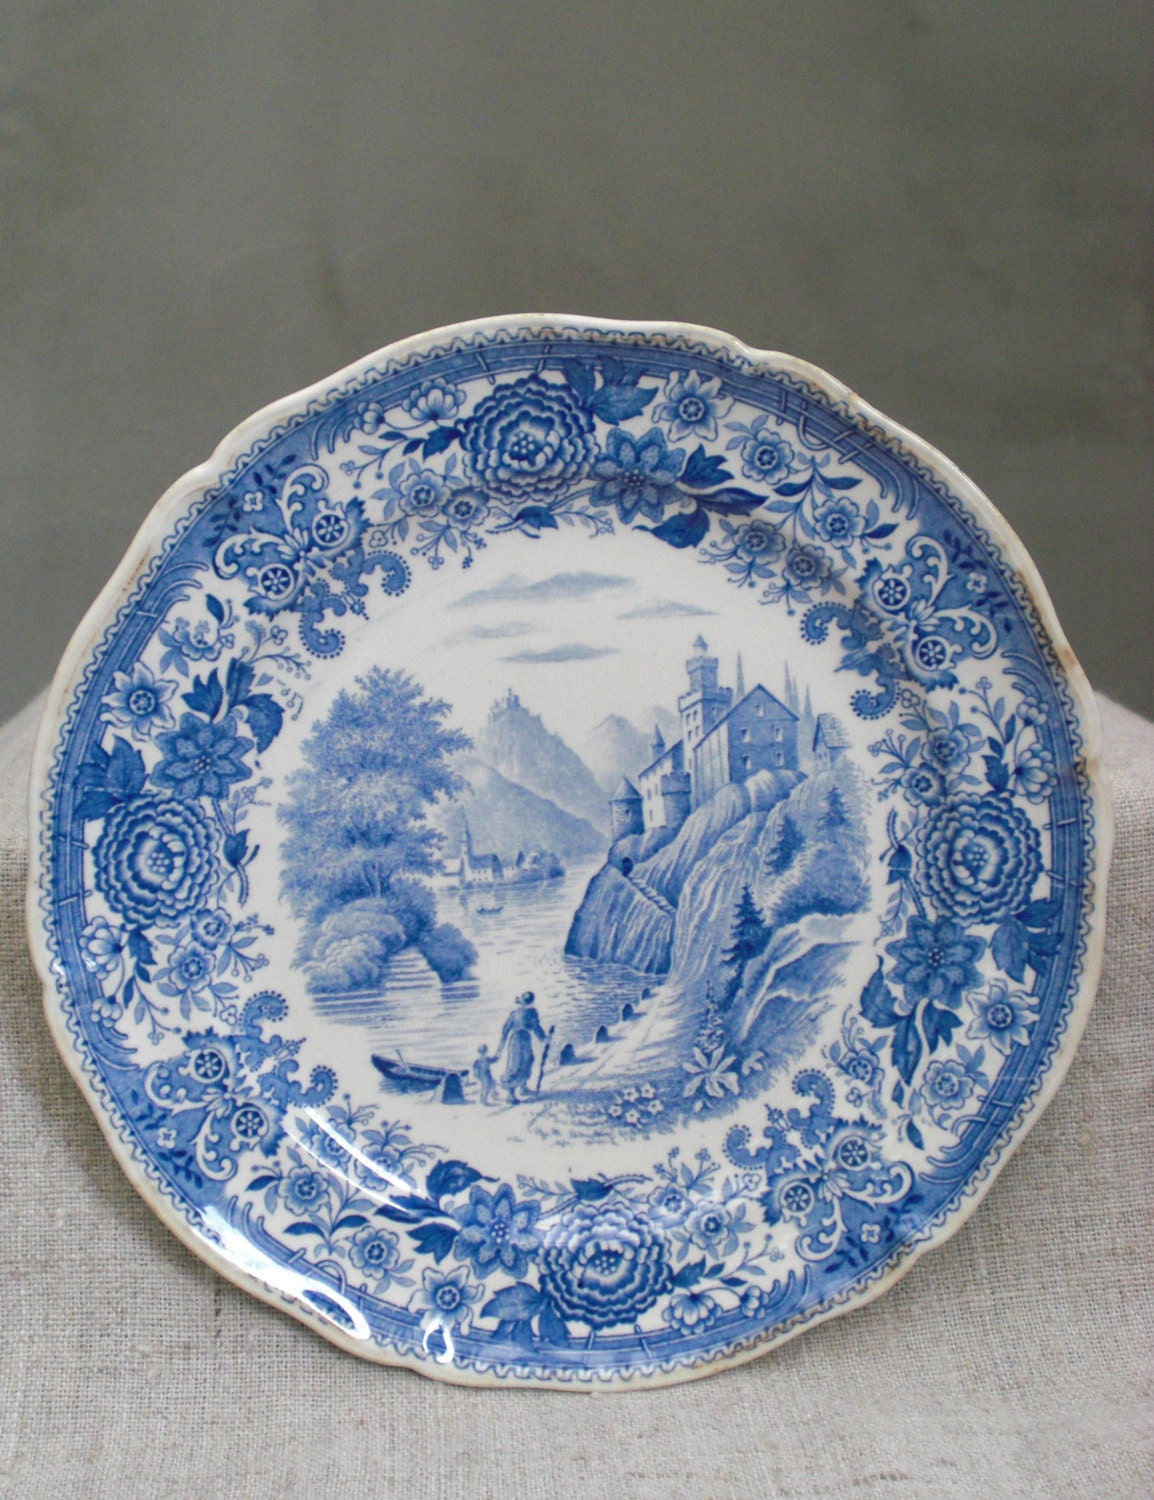 Blue and white plate antique old villeroy boch transferware for Villeroy and boch plates